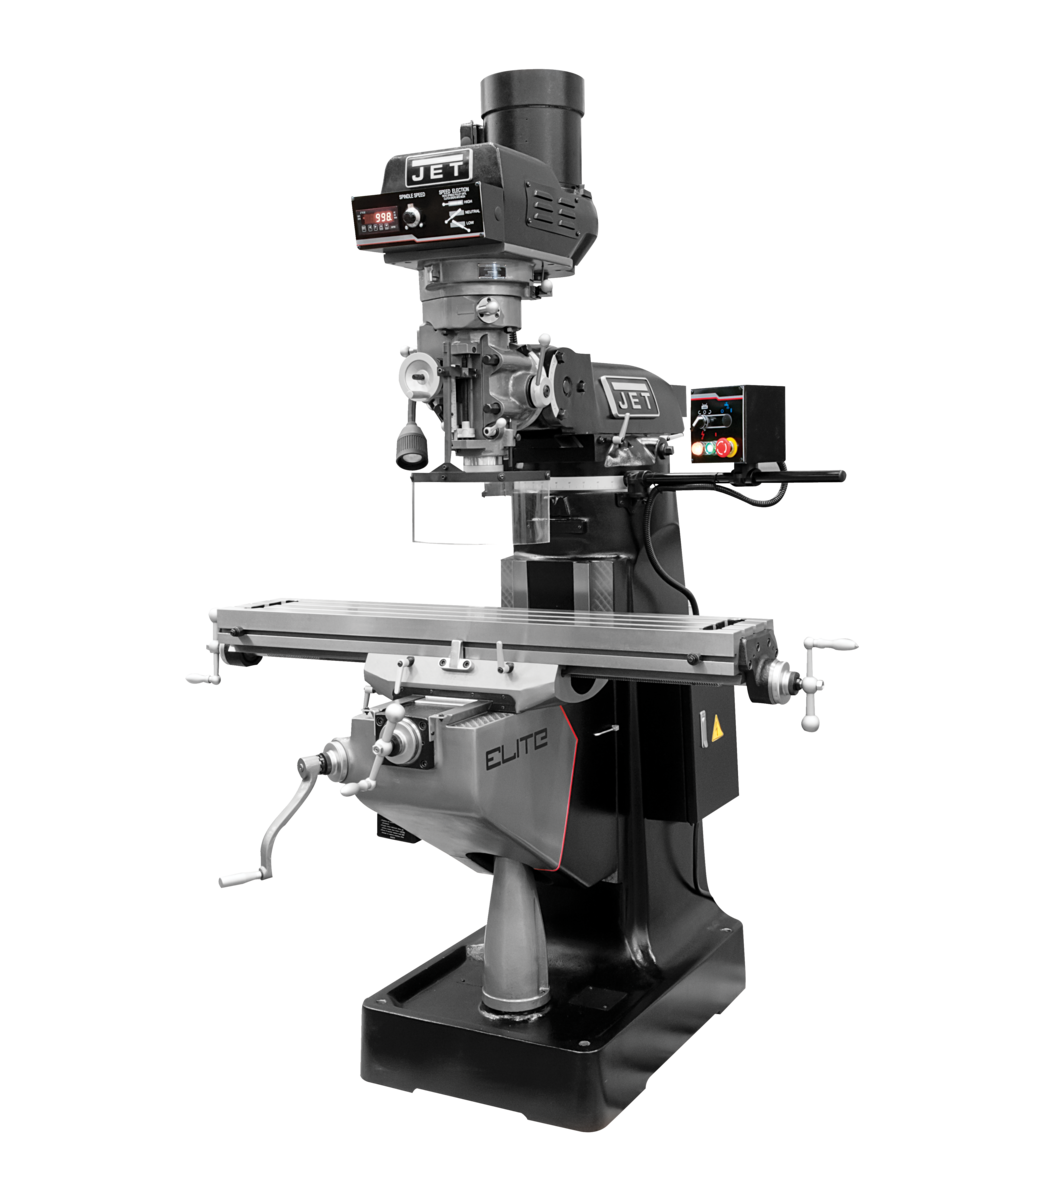 EVS-949 Mill with 3-Axis Newall DP700 (Knee) DRO and Servo X-Axis Powerfeed